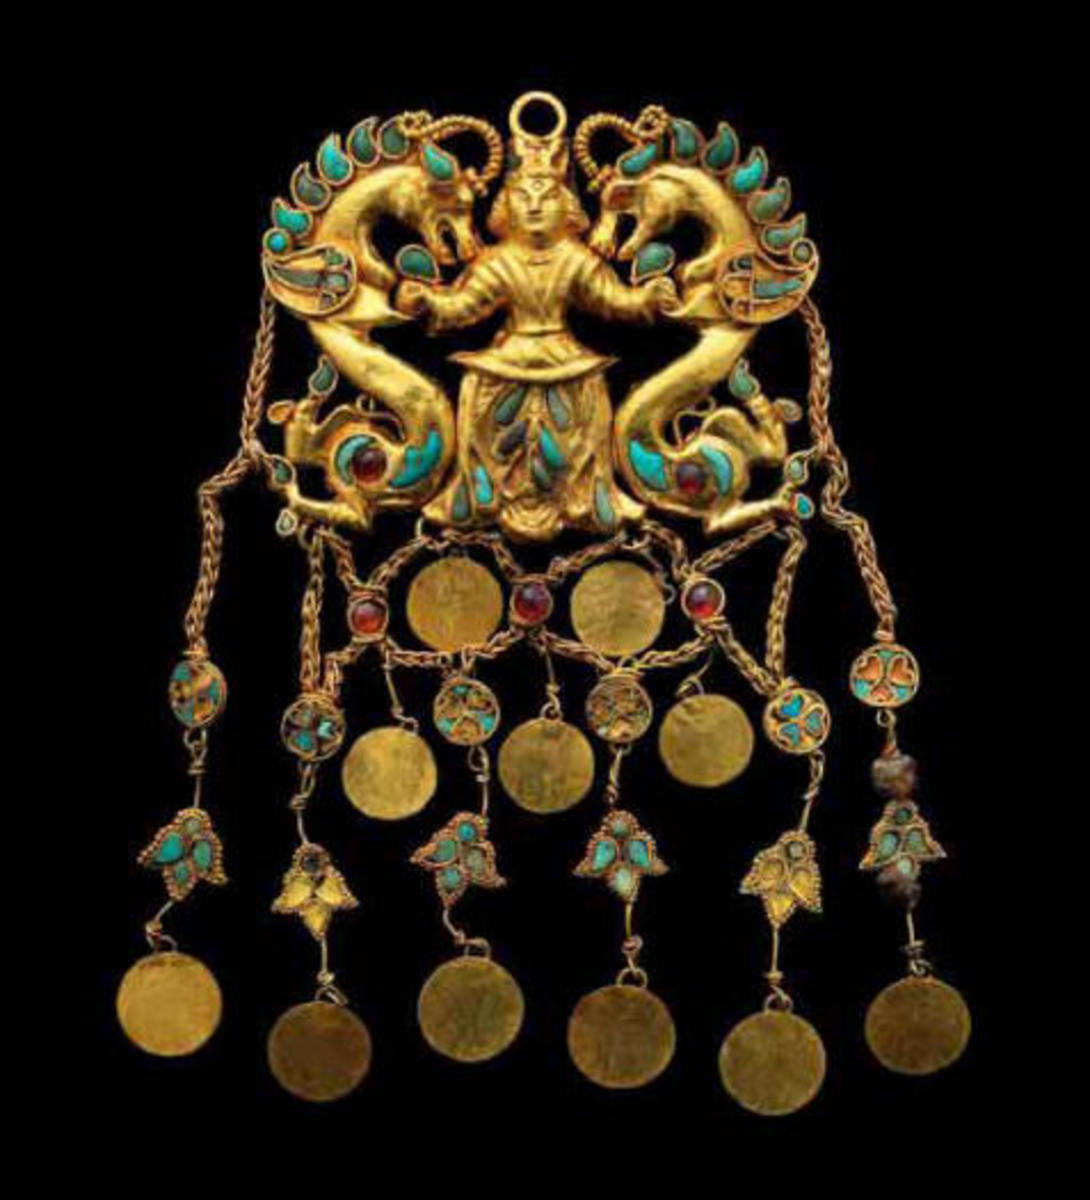 Headdress ornament. Tillya Tepe Tomb II, first century A.D. Gold with turquoise, garnet, lapis lazuli, carnelian and pearls 12.5 x 6.5 cm (5 x 2–5/8 in.) Image credit: Metropolitan Museum